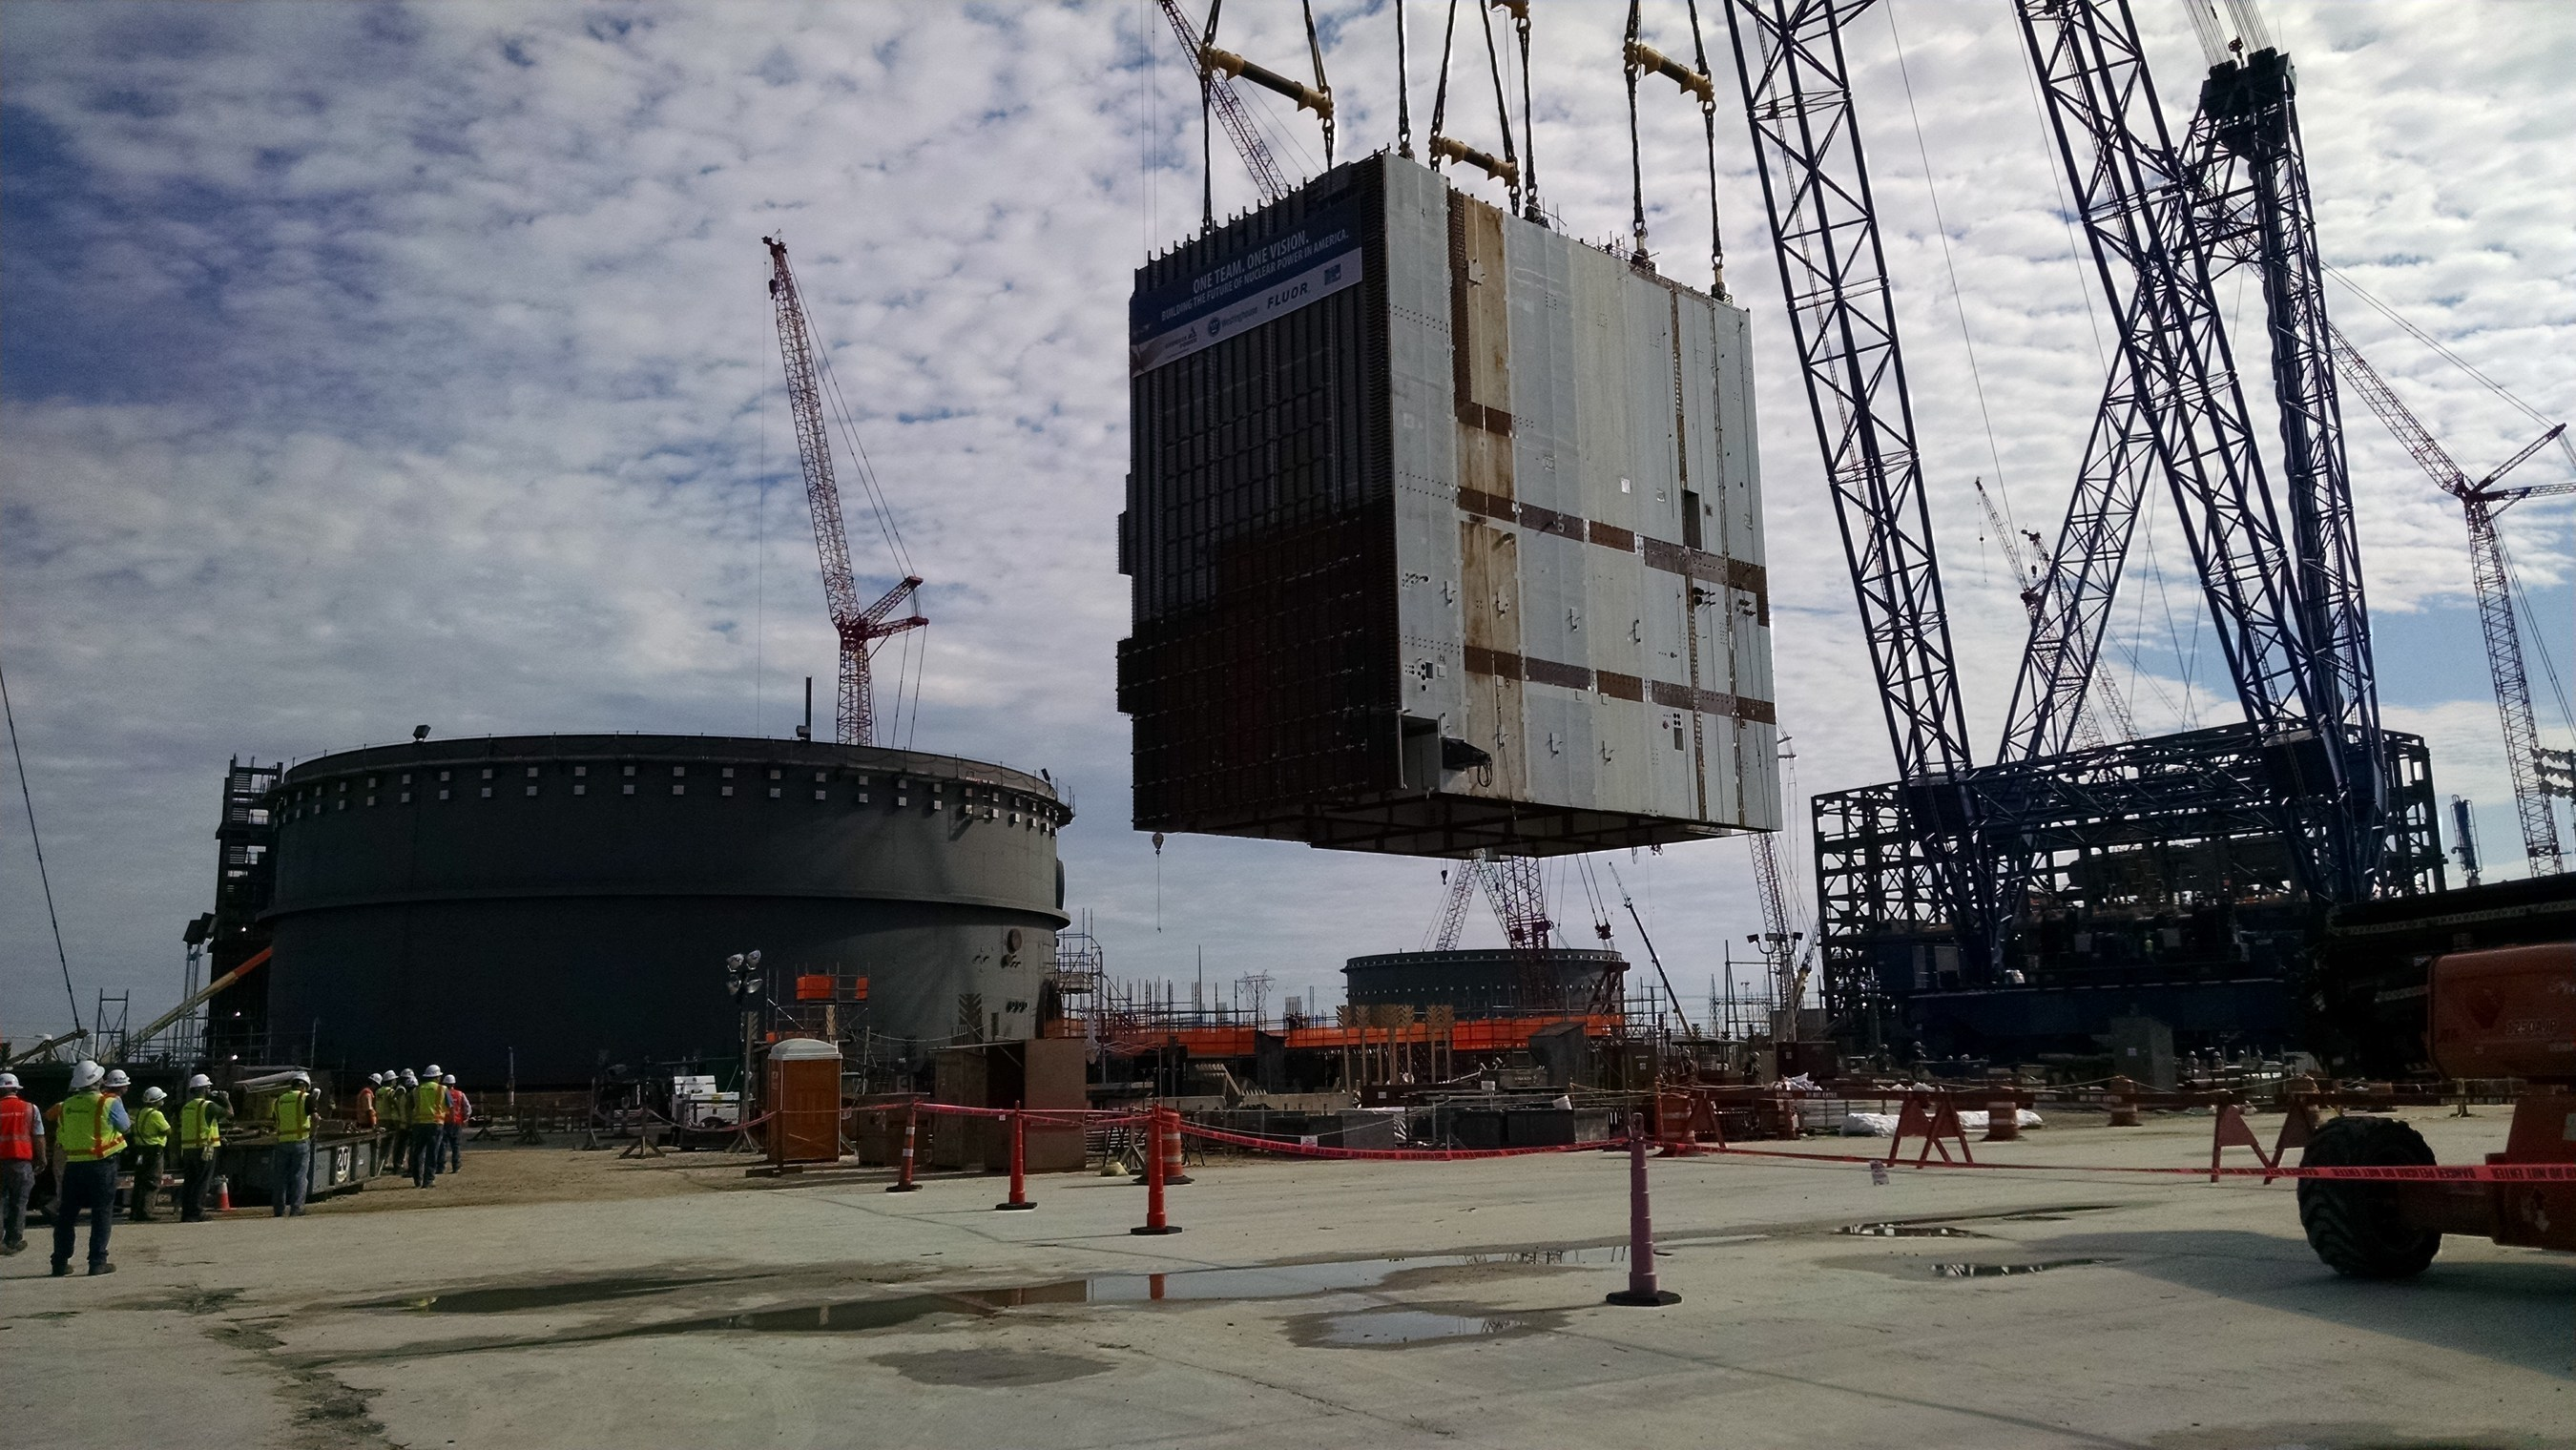 On Saturday, Aug. 20, the project team at the Vogtle nuclear expansion near Waynesboro successfully placed the CA20 module into the Unit 4 nuclear island. With a footprint of approximately 67 feet long by 47 feet wide, the critical module will house various plant components, including the used fuel storage area.